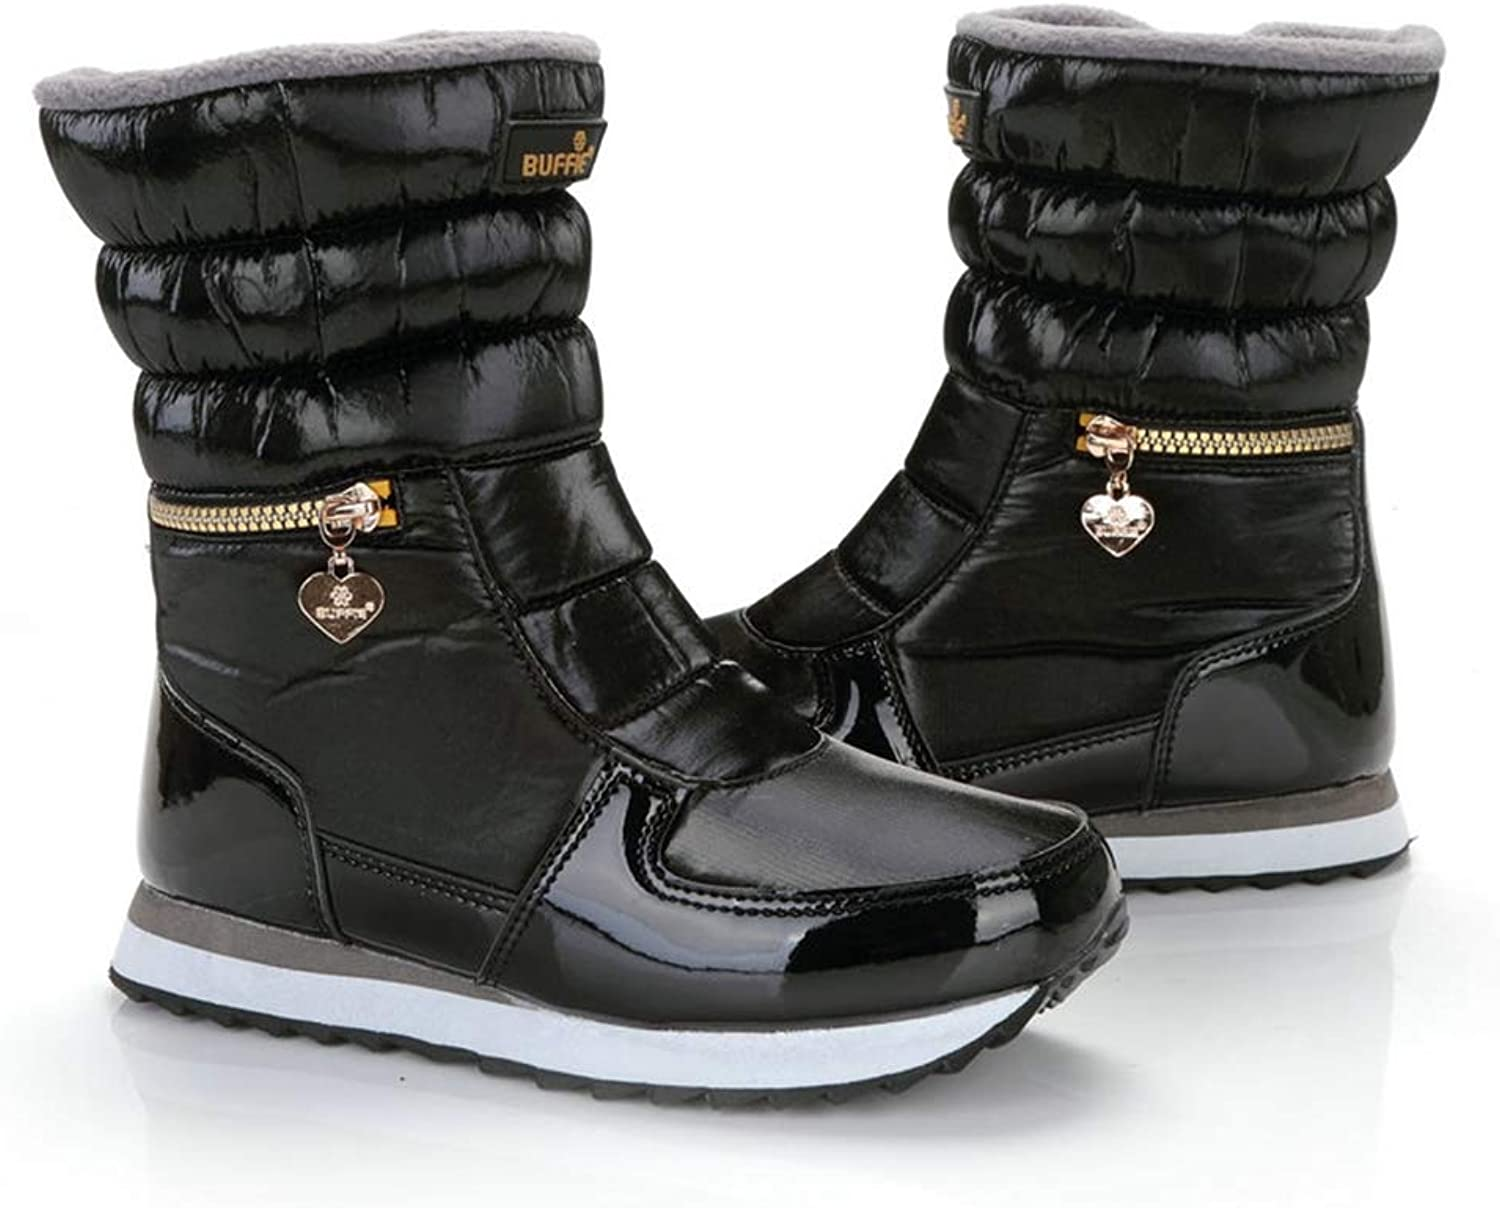 T-JULY Women's Snow Boots Fashion Winter Warm Mid-Calf shoes